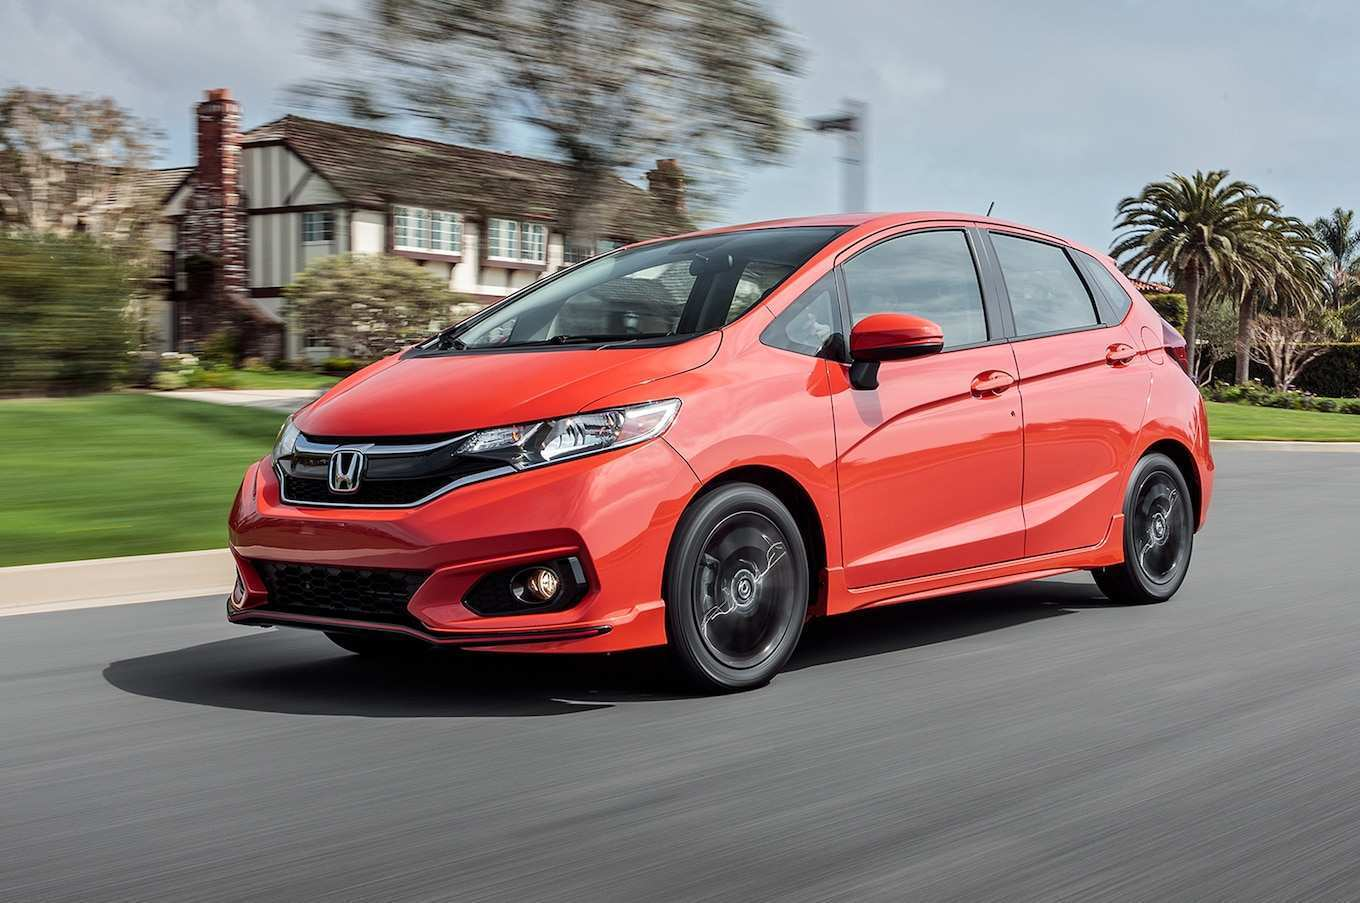 84 All New 2019 Honda Fit Rumors Exterior and Interior with 2019 Honda Fit Rumors